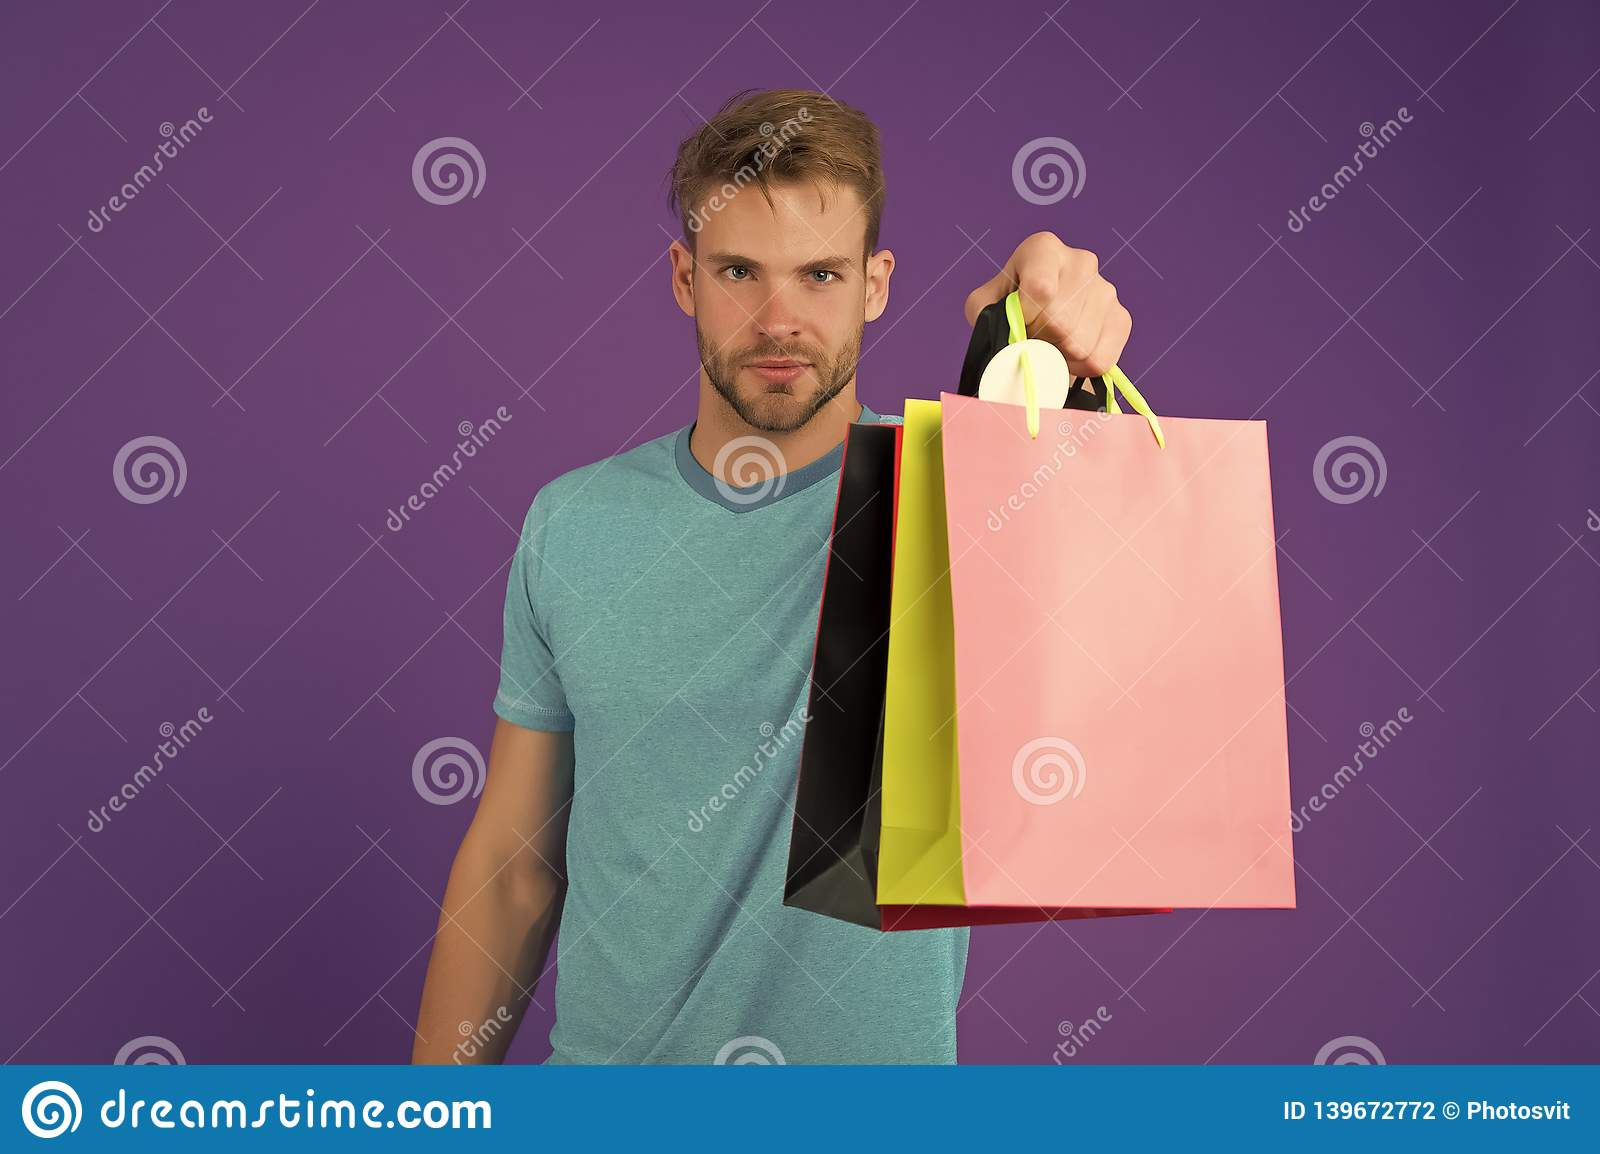 Macho with colorful paper bags on violet background. Man with shopping bags. Fashion shopper in casual blue tshirt